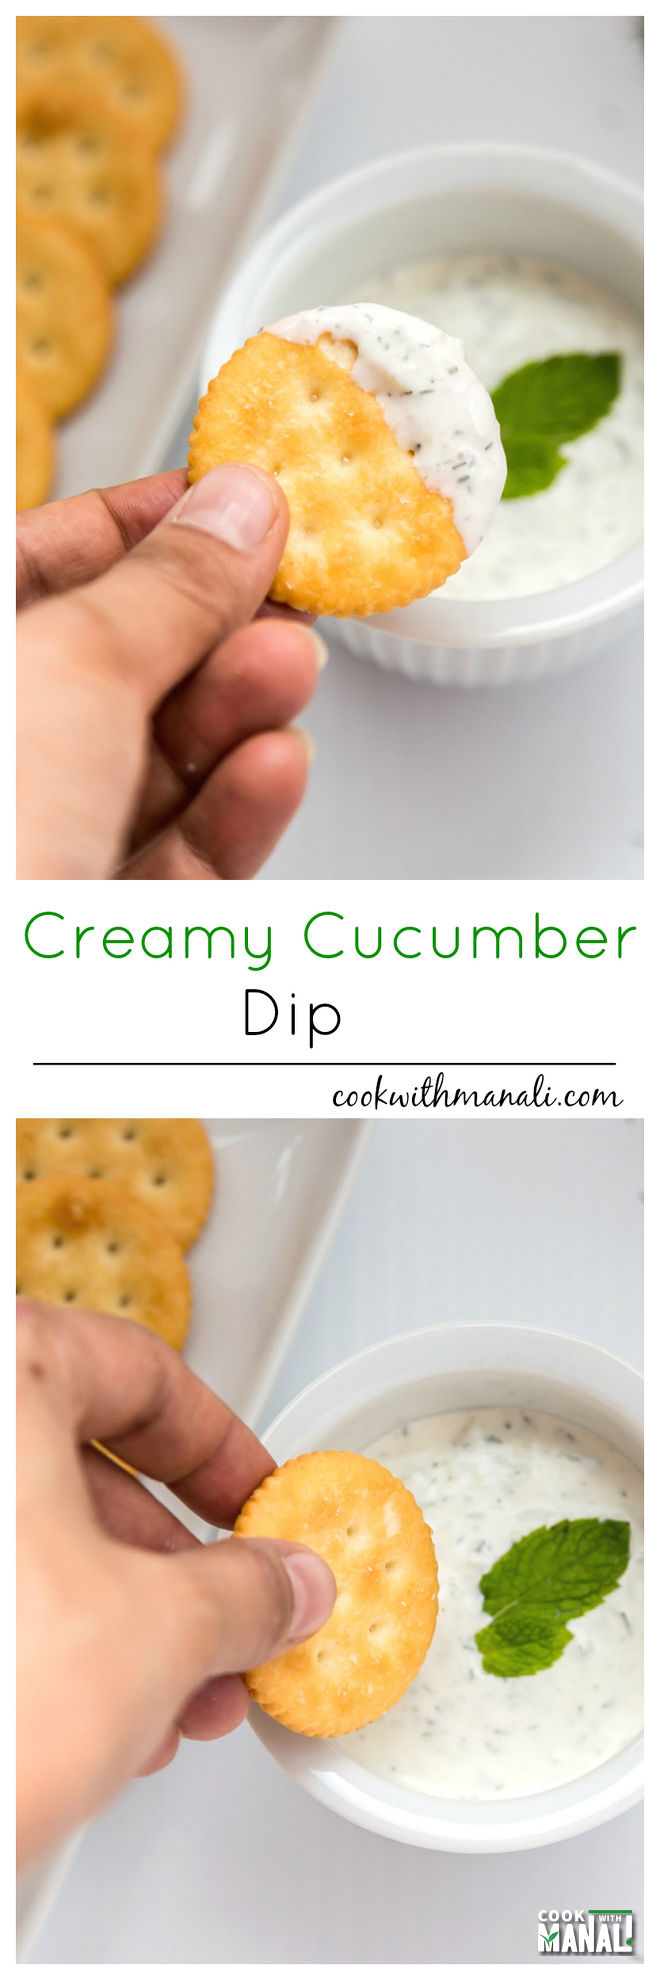 Creamy Cucumber Dip-Collage